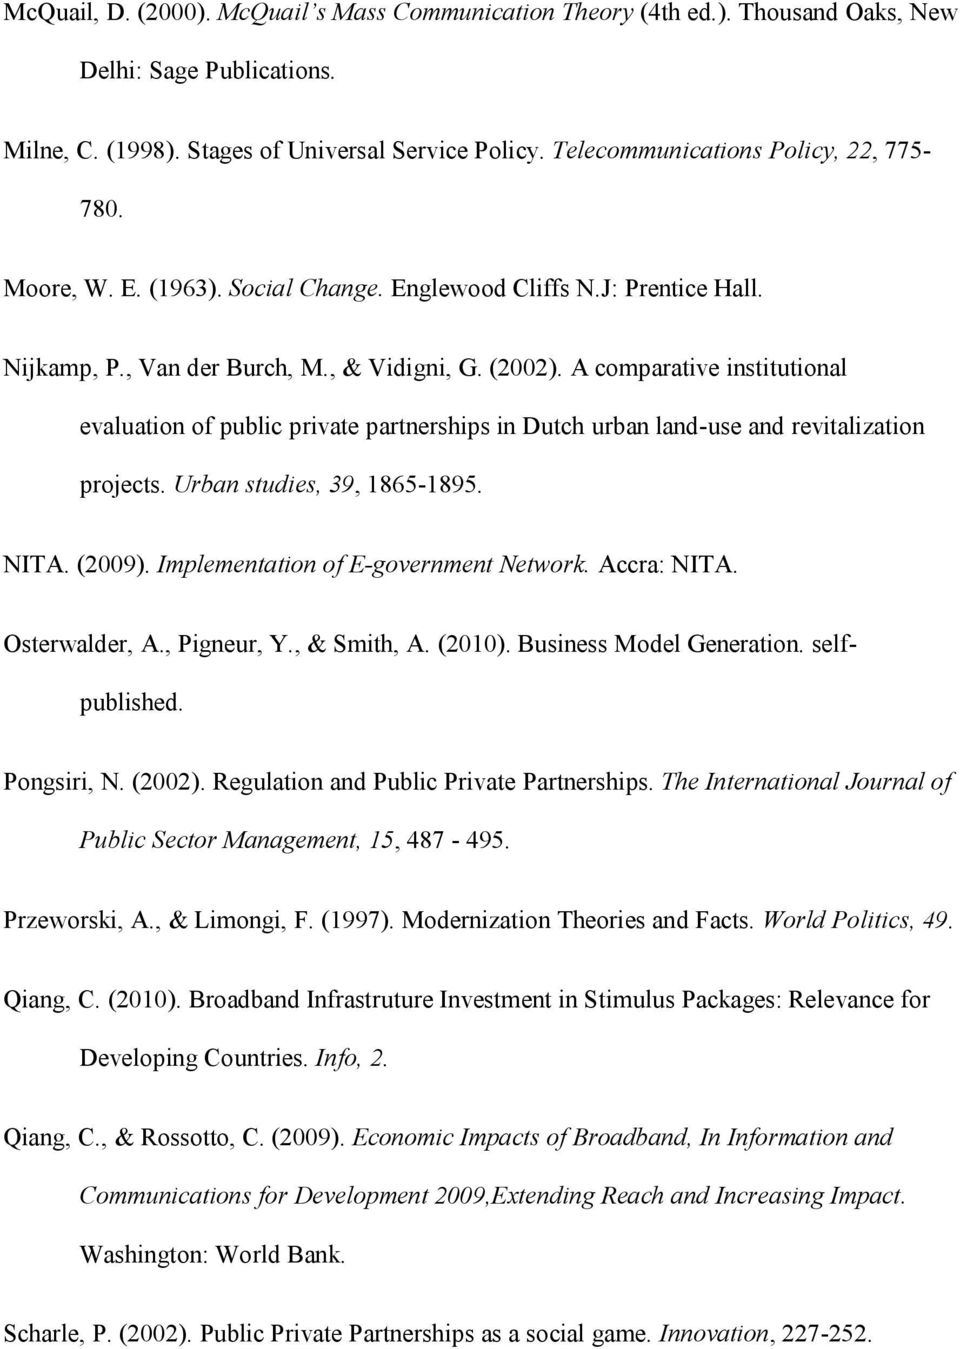 A comparative institutional evaluation of public private partnerships in Dutch urban land-use and revitalization projects. Urban studies, 39, 1865-1895. NITA. (2009).